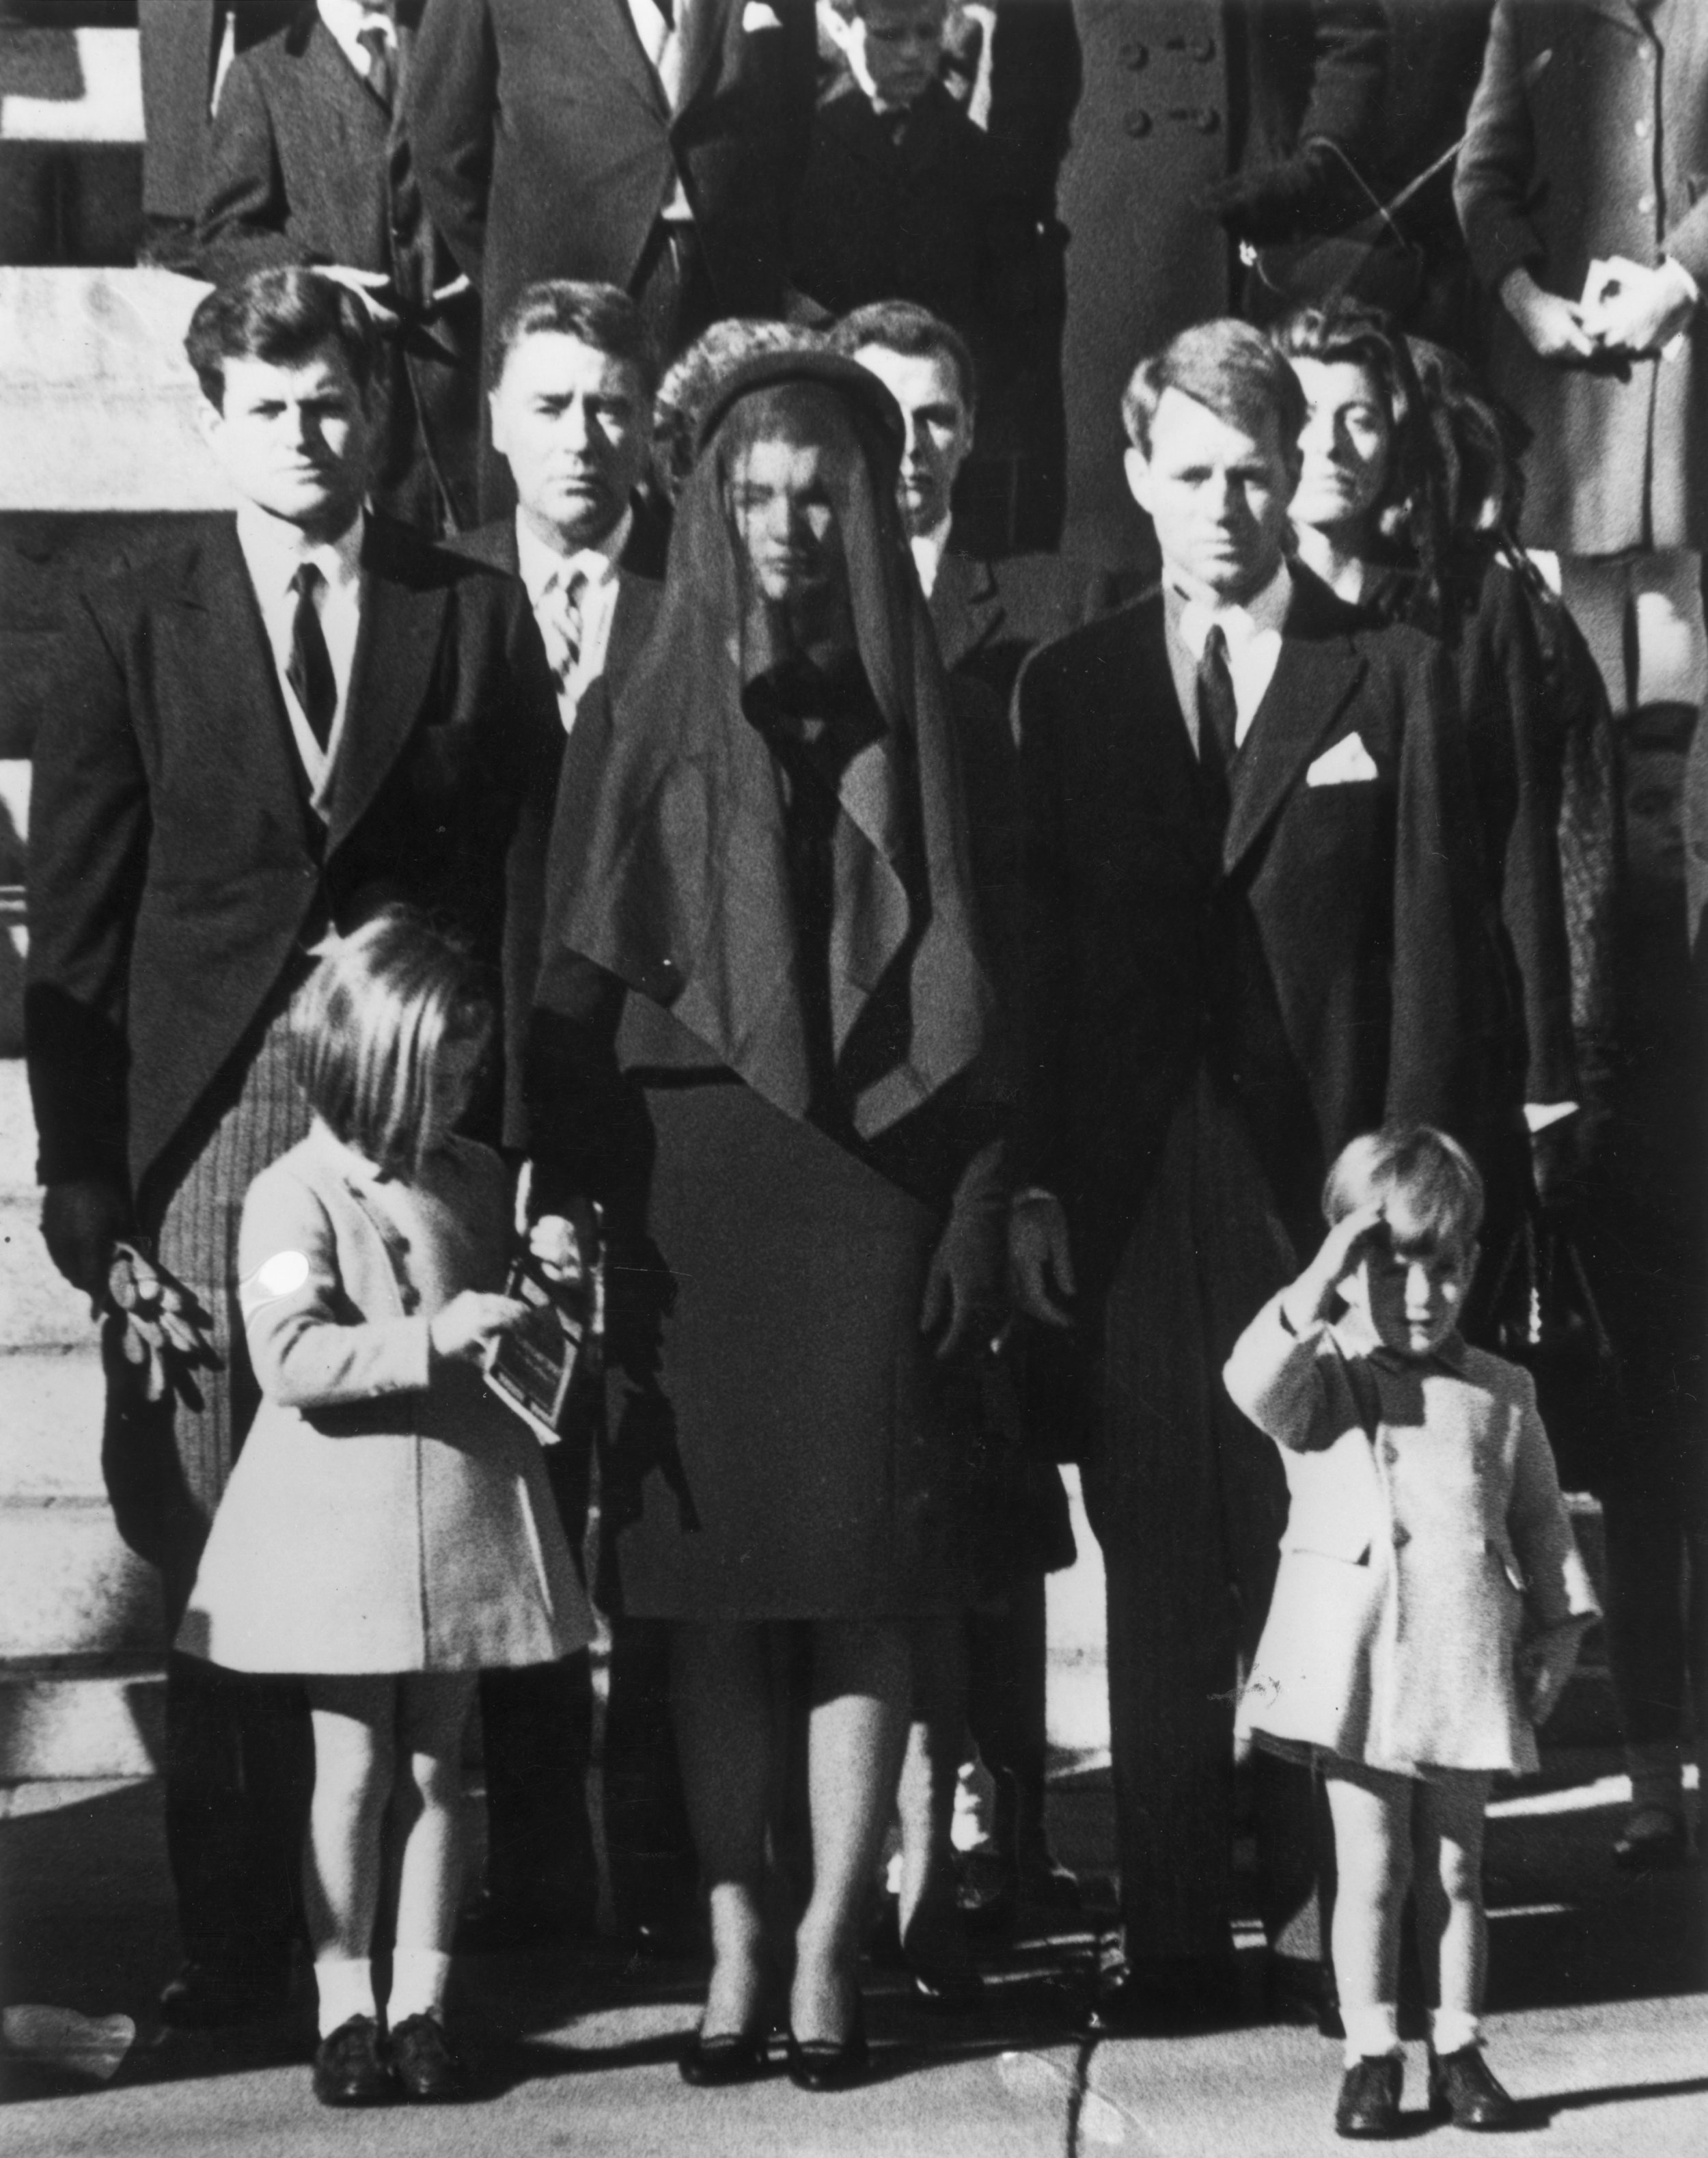 a6f1bea6bd50d JFK Assassination Photos From the Day the President Was Killed and ...